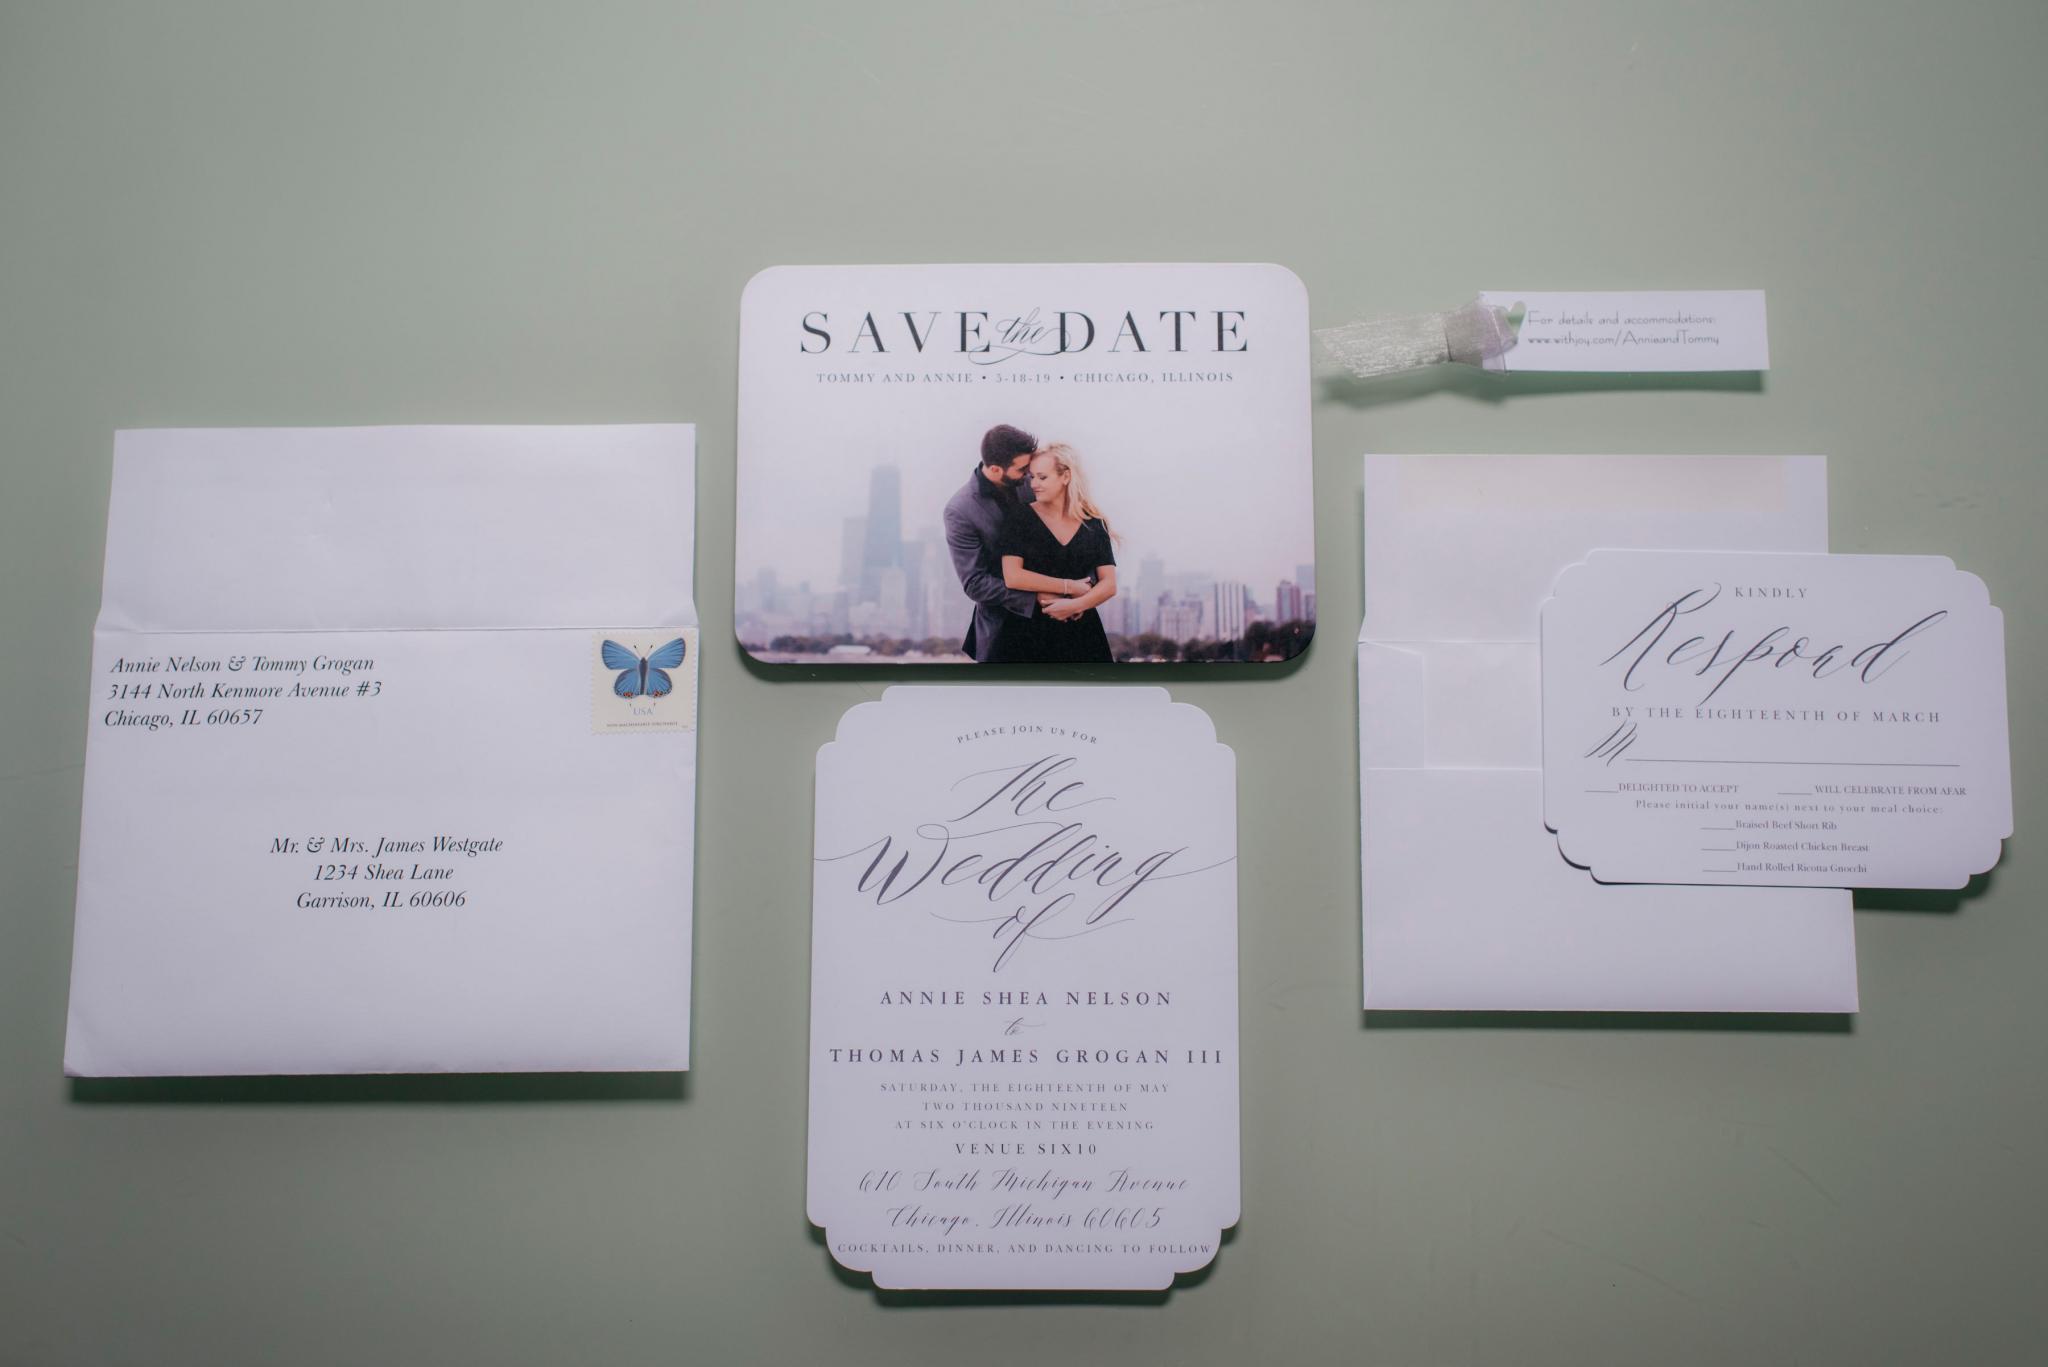 annie tommy venue SIX10 chicago, il wedding invitation suite